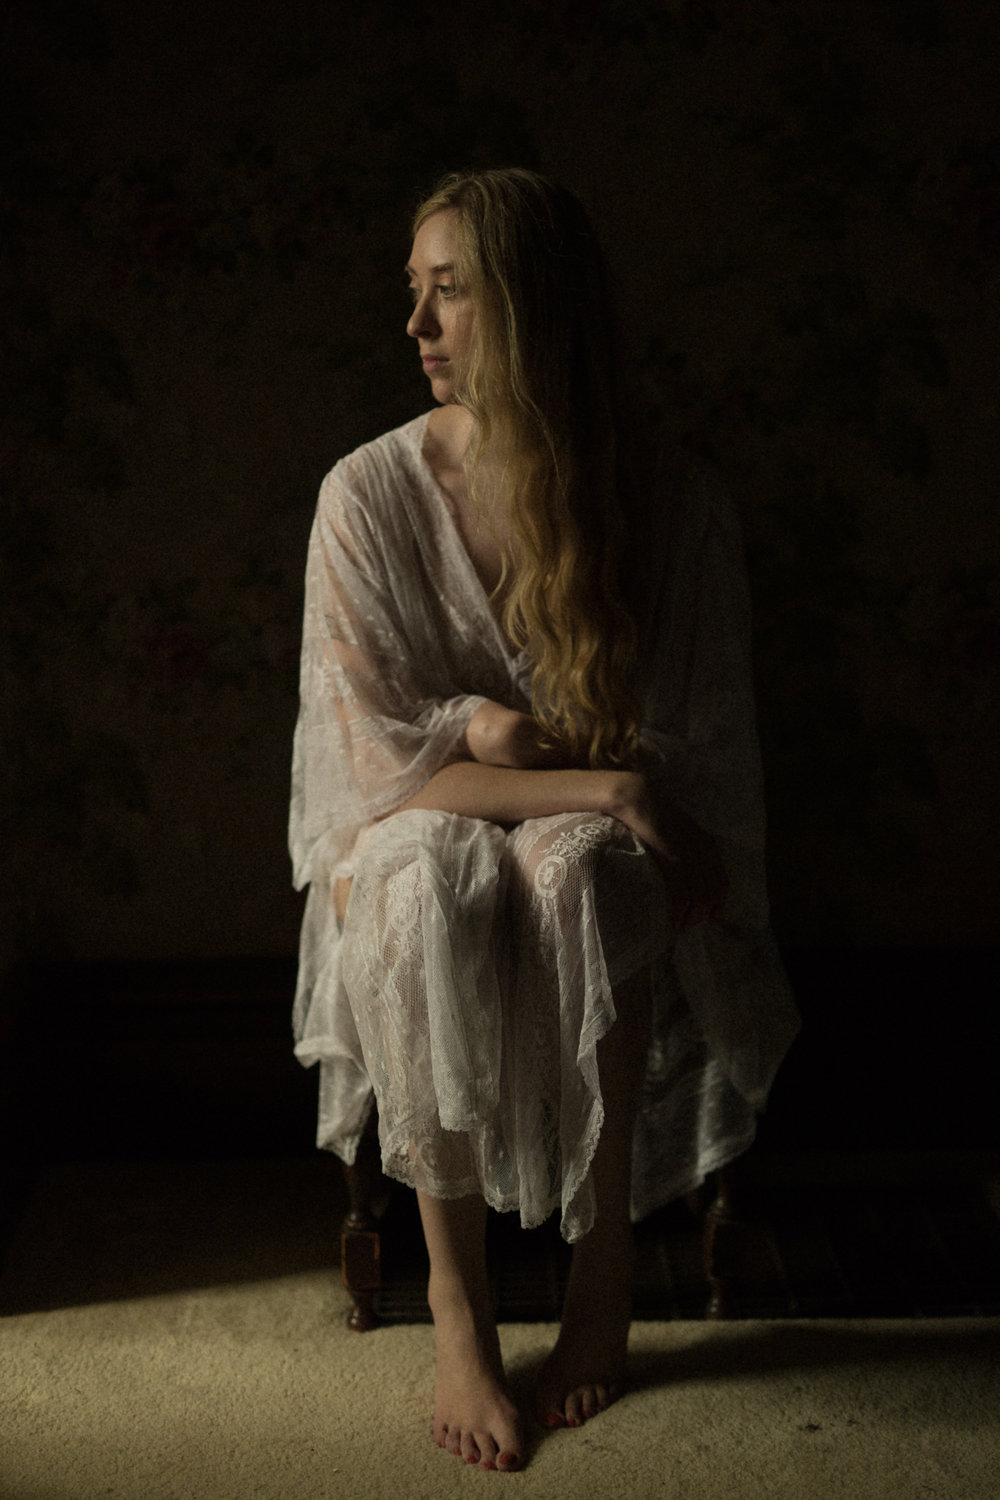 Renaissance painting inspiration bohemian victorian chiaroscuro portrait light classic portraiture Columbus Ohio sarah rose photography